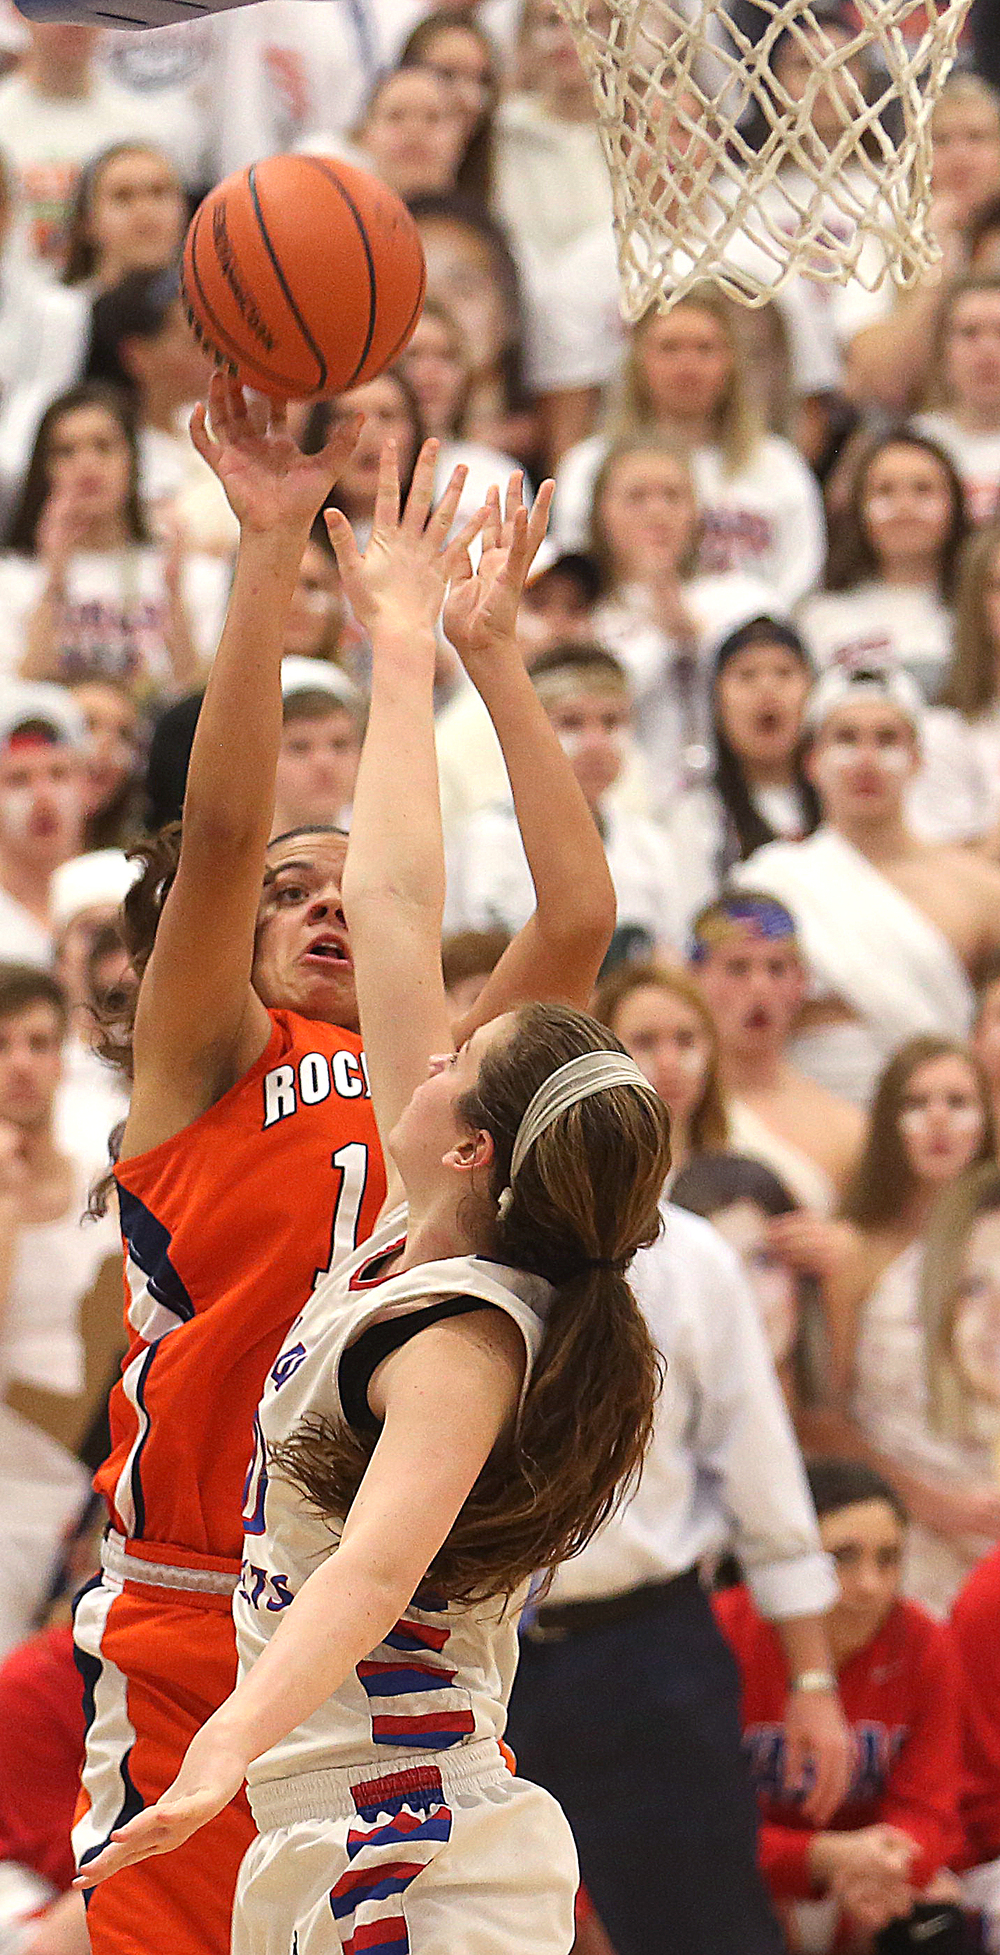 Rochester player Lyric Boone puts up a shot. Rochester High School defeated Metropolis Massac County 39-35 